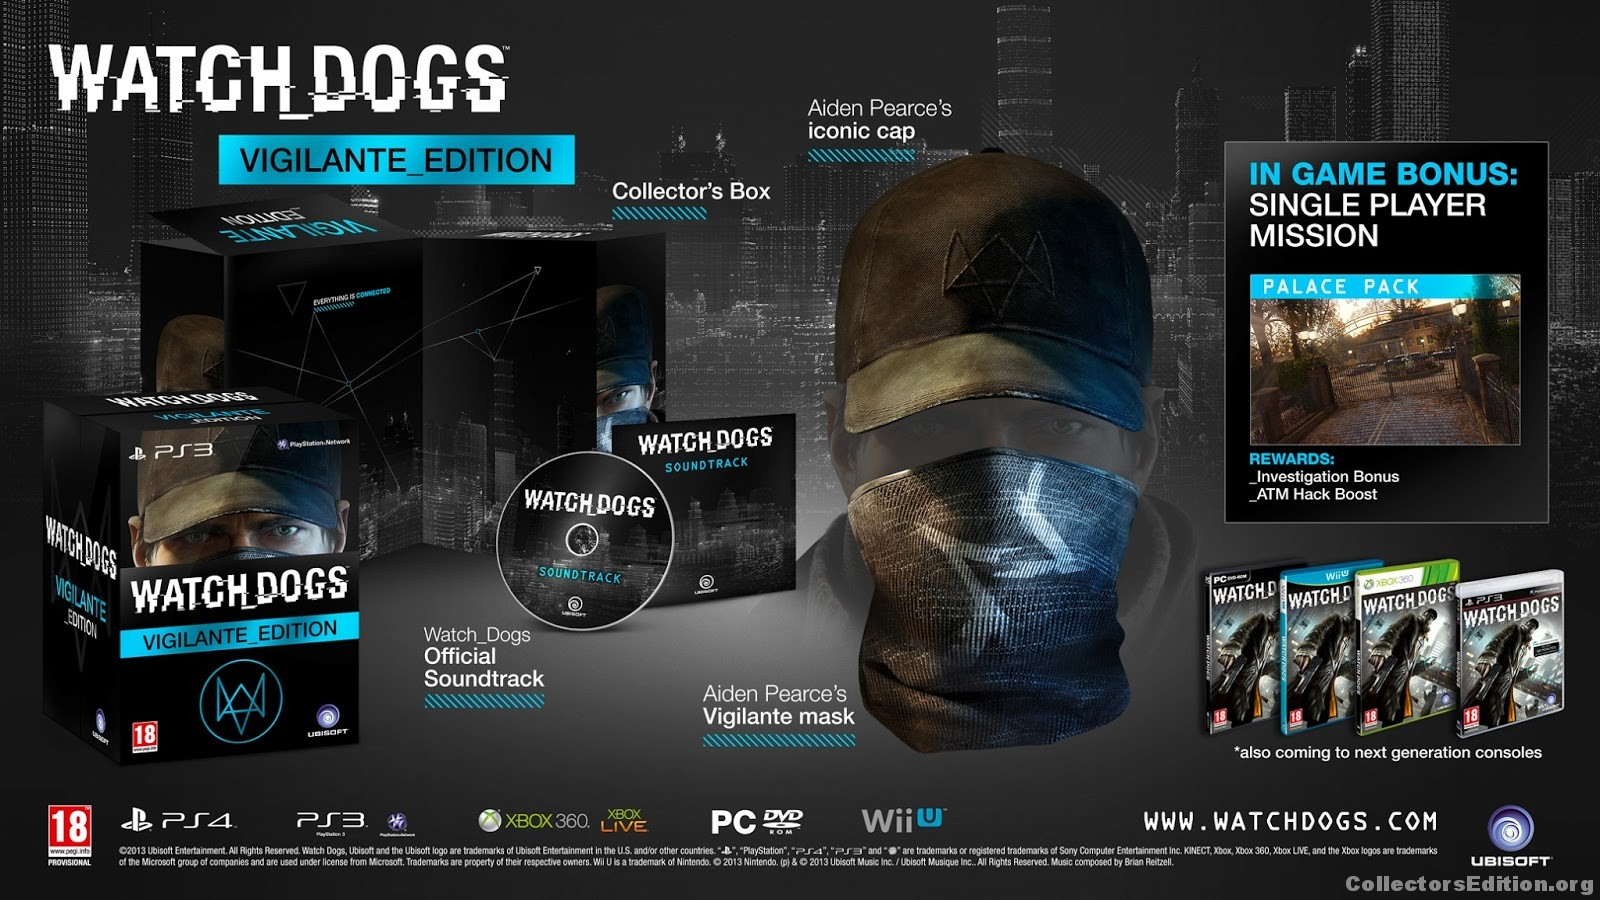 walmart black friday map with Watch Dogs Vigilante Edition Ps3 2 on Watch Dogs Vigilante Edition Ps3 2 additionally Artwork additionally 3ds 127315 as well Wyoming Elk Unit Map likewise Photo.